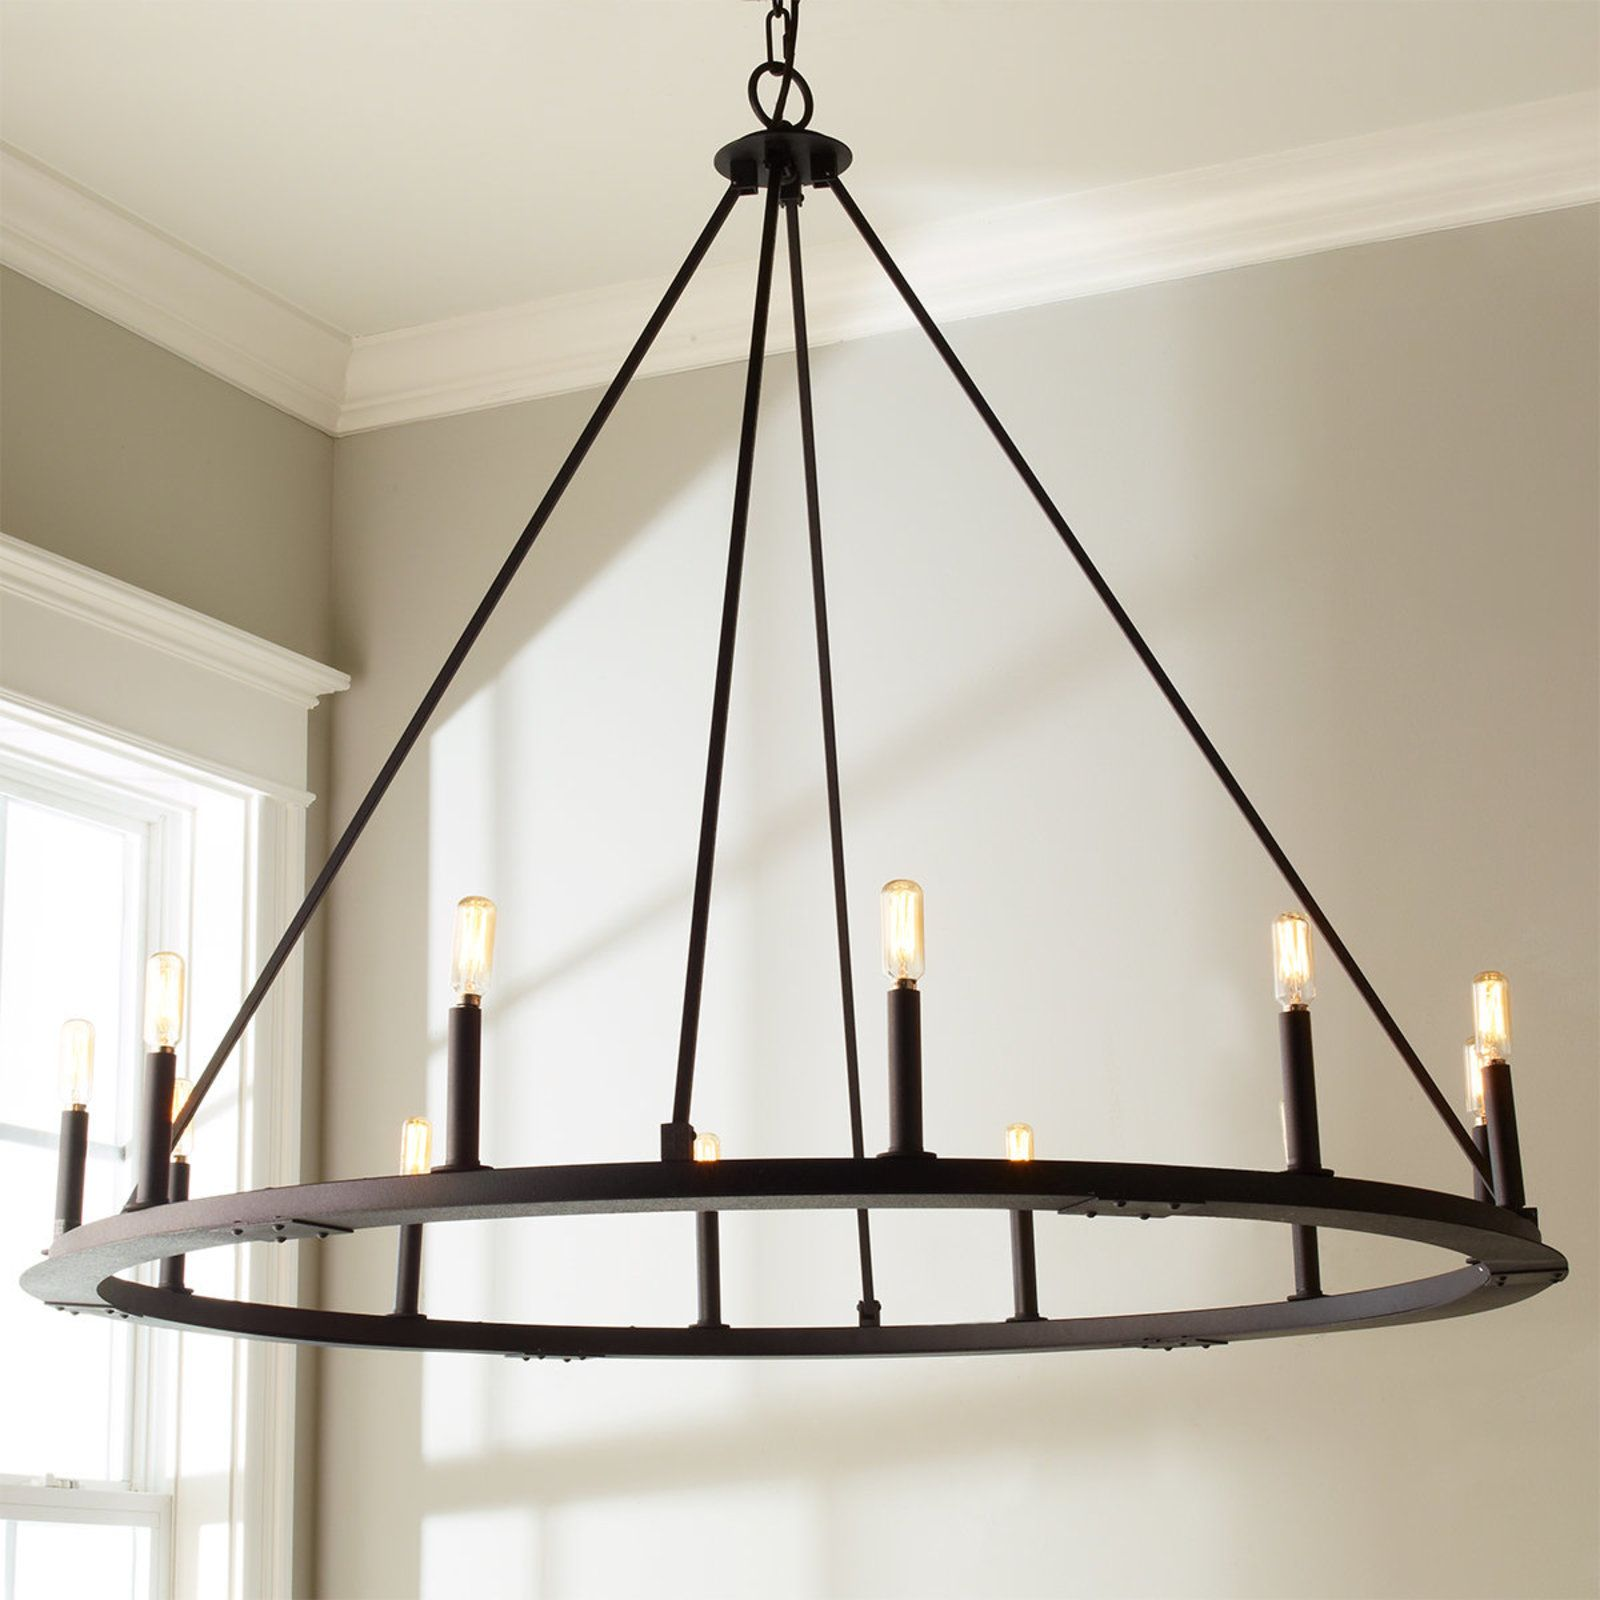 Minimalist Iron Ring Chandelier 12 Light Ring Chandelier Iron